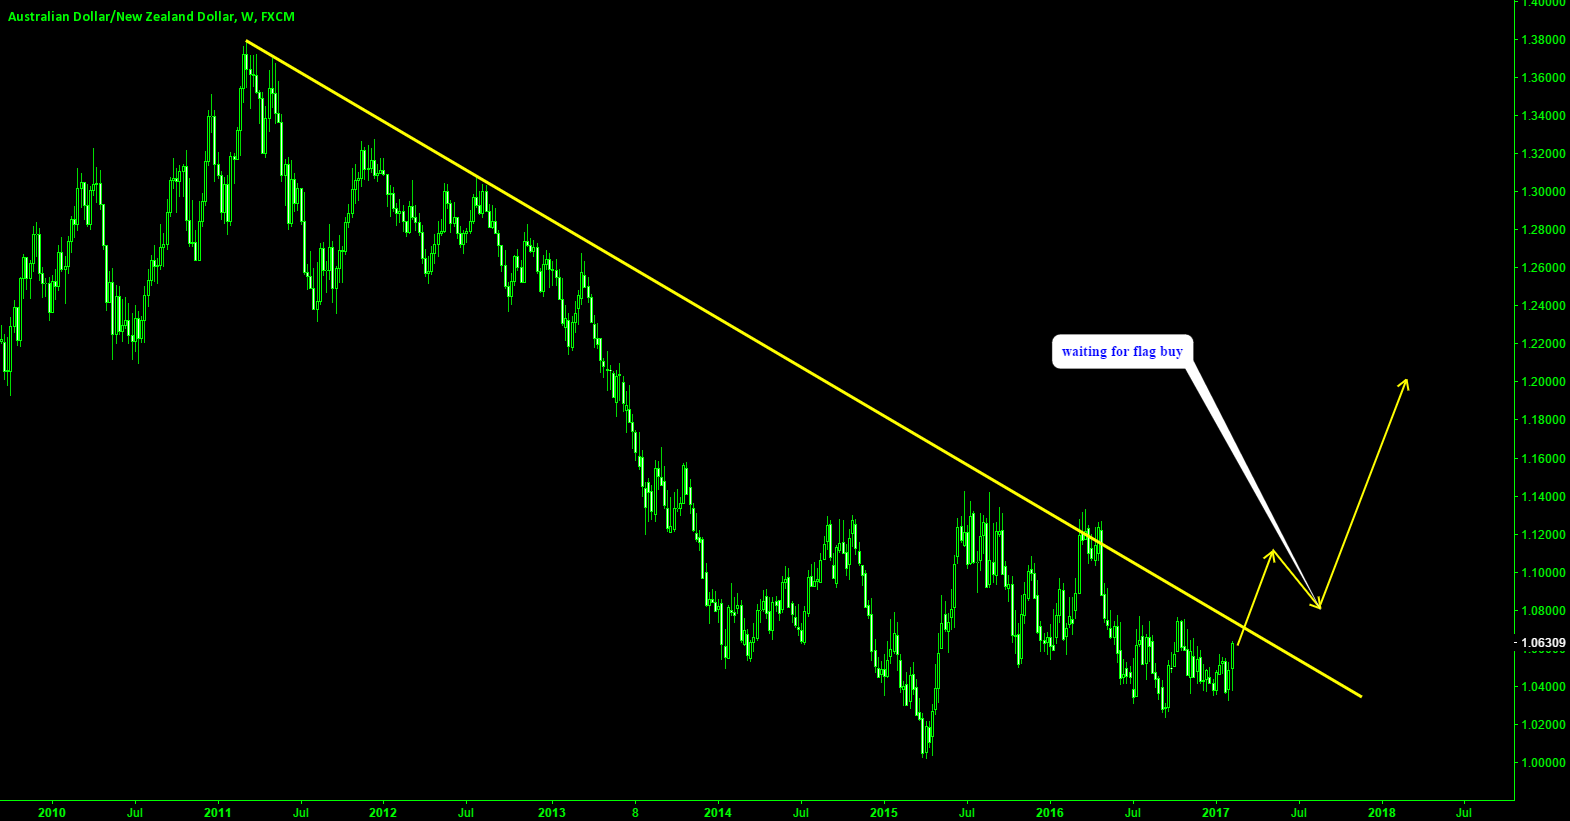 AUDNZD waiting for a flag for the buy setup.